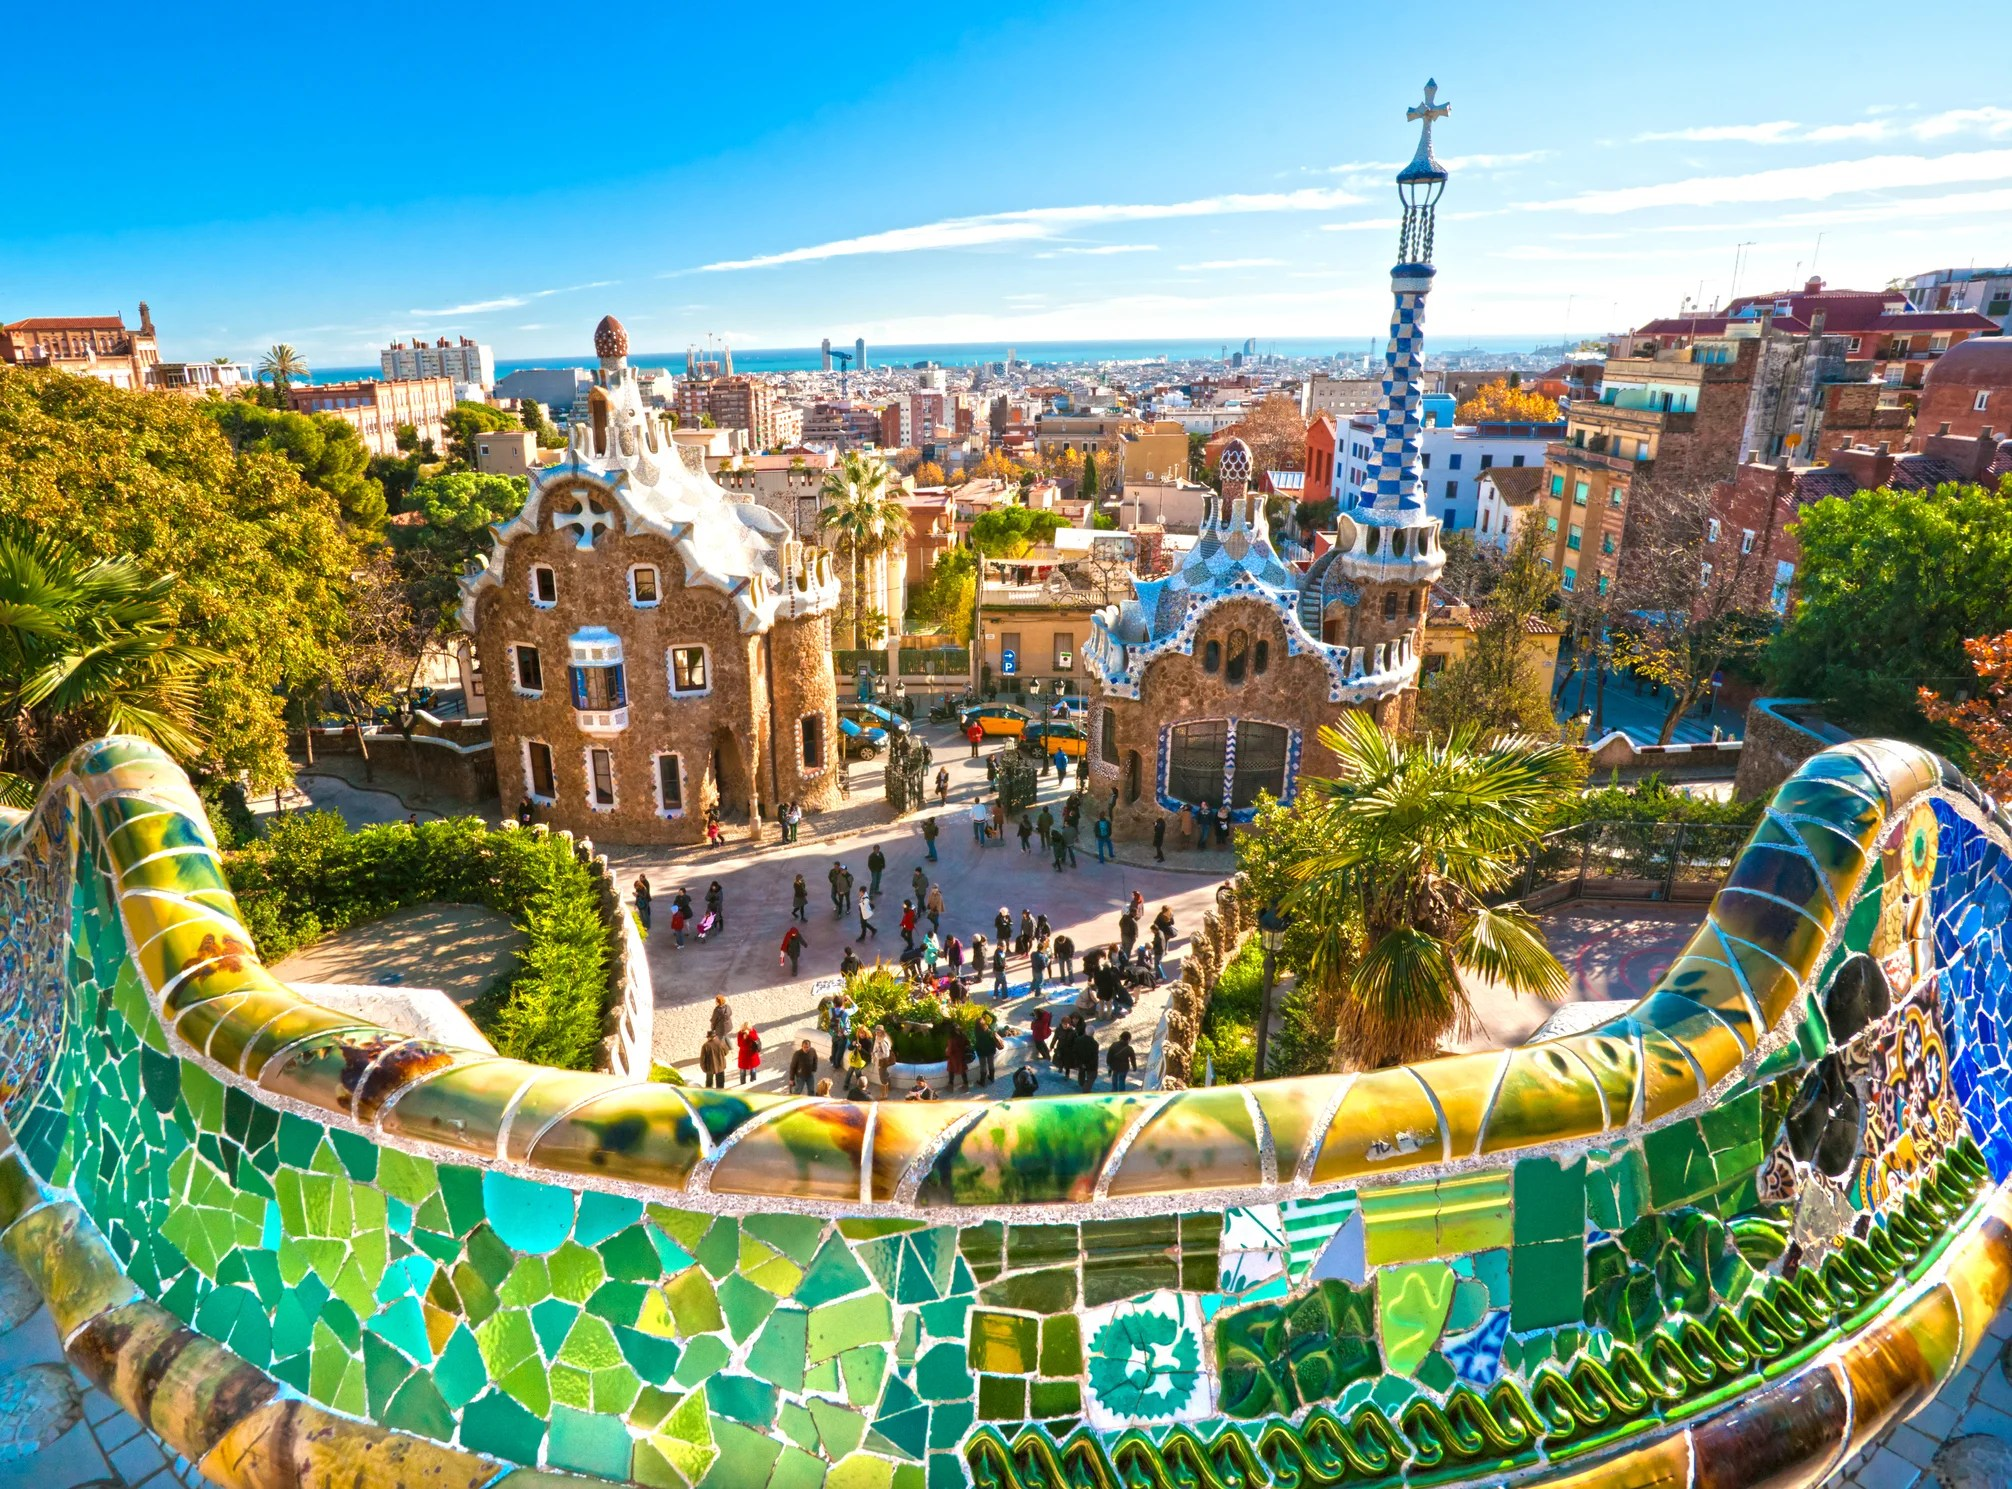 Flights to Madrid, Barcelona from $208 round trip on major airlines